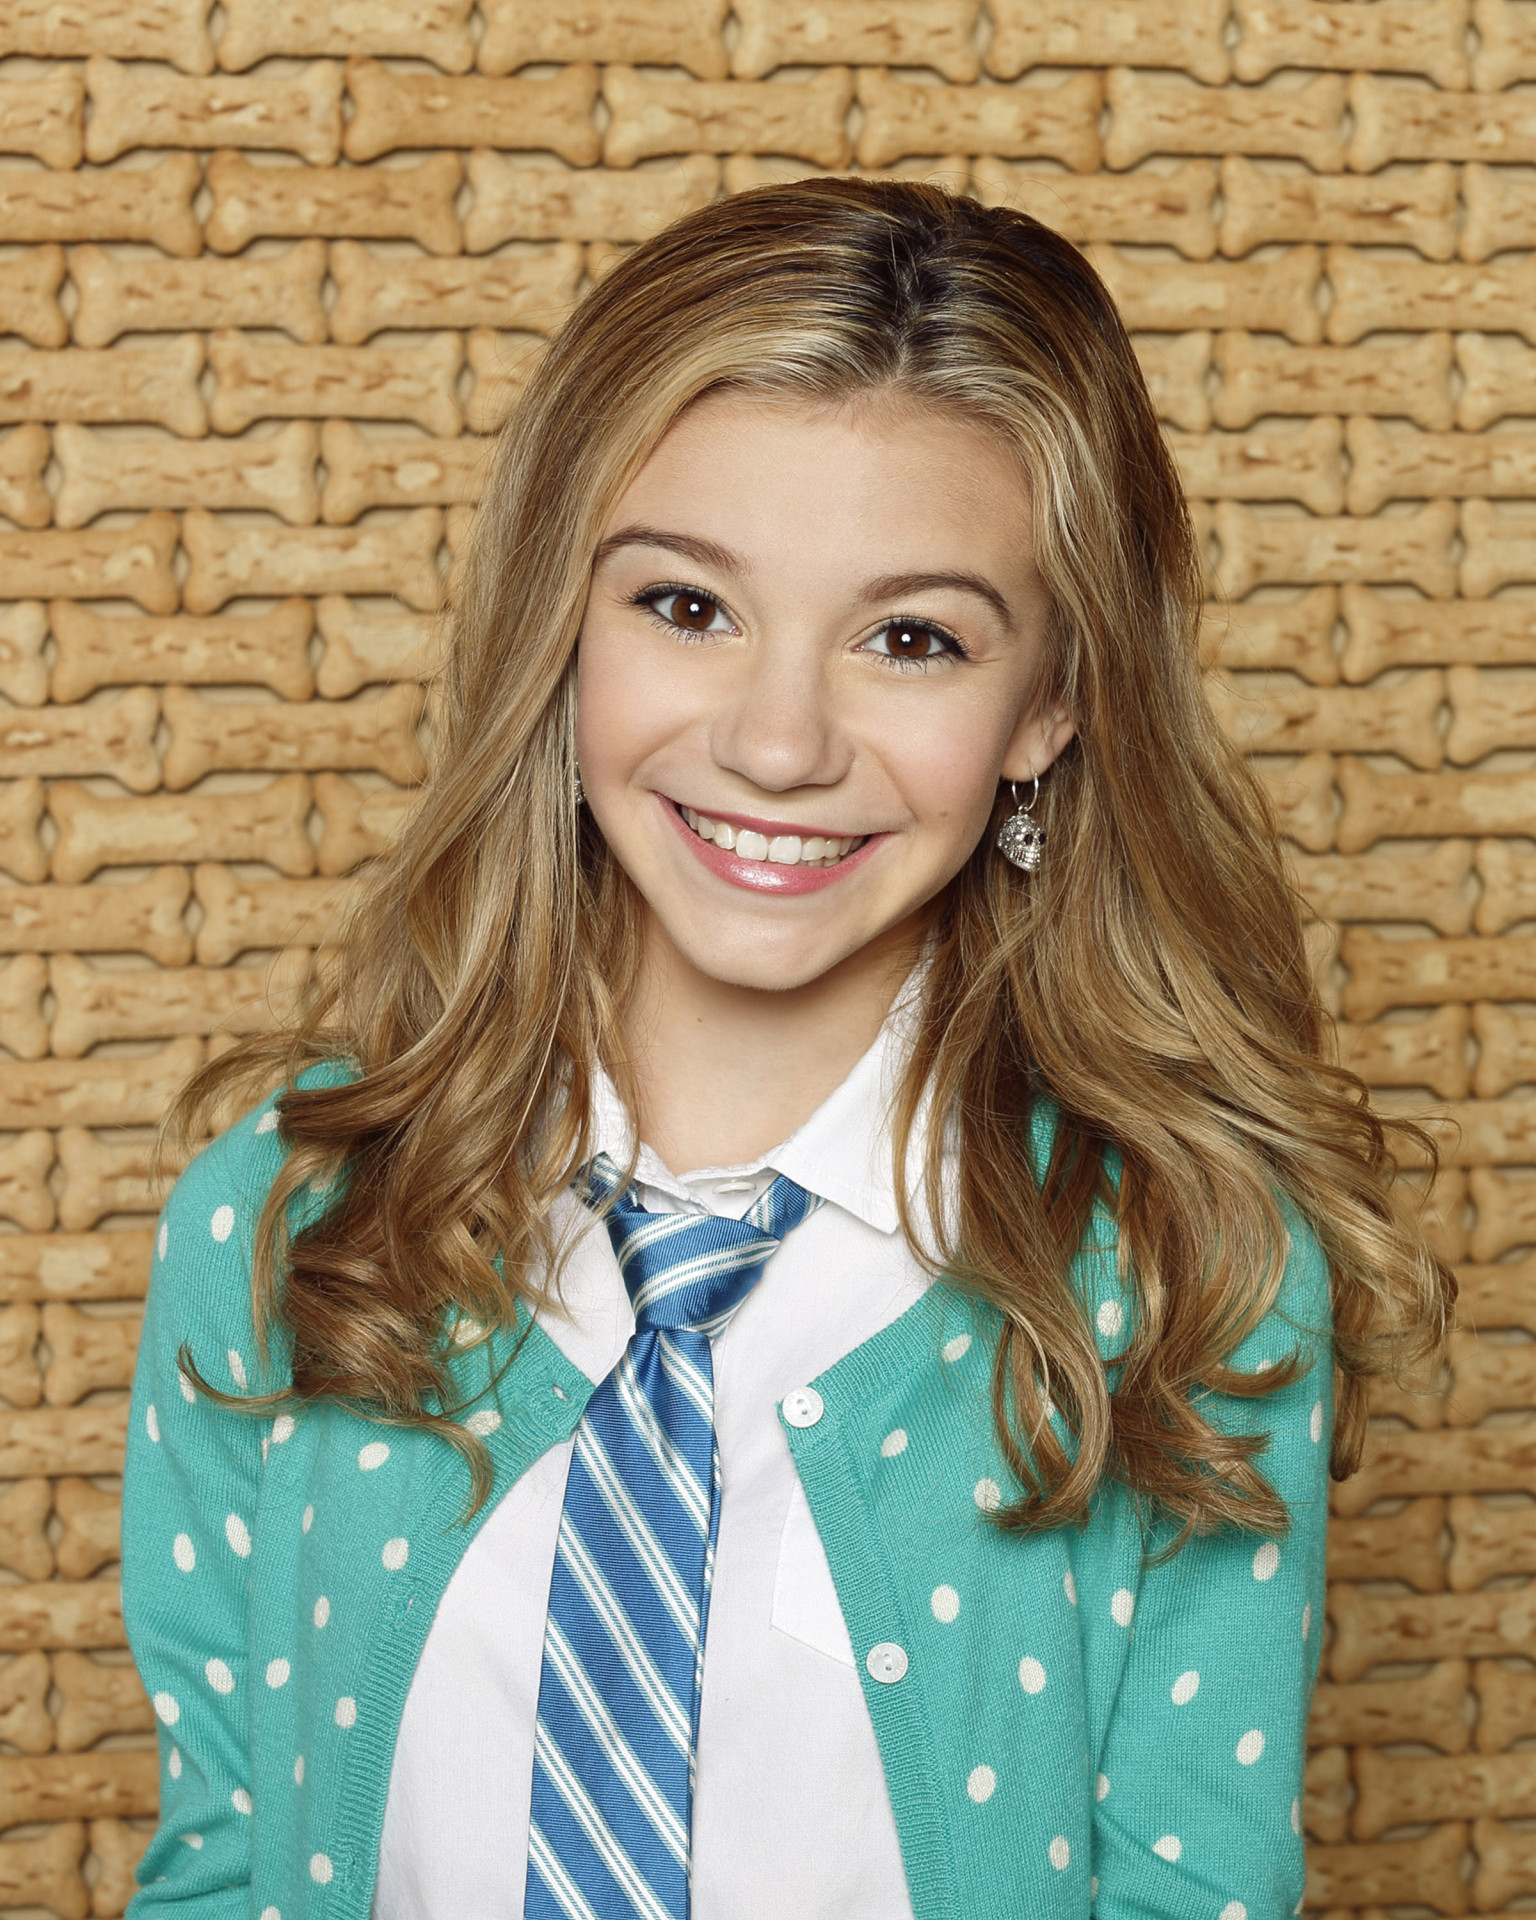 Actress G Hannelius - age: 18